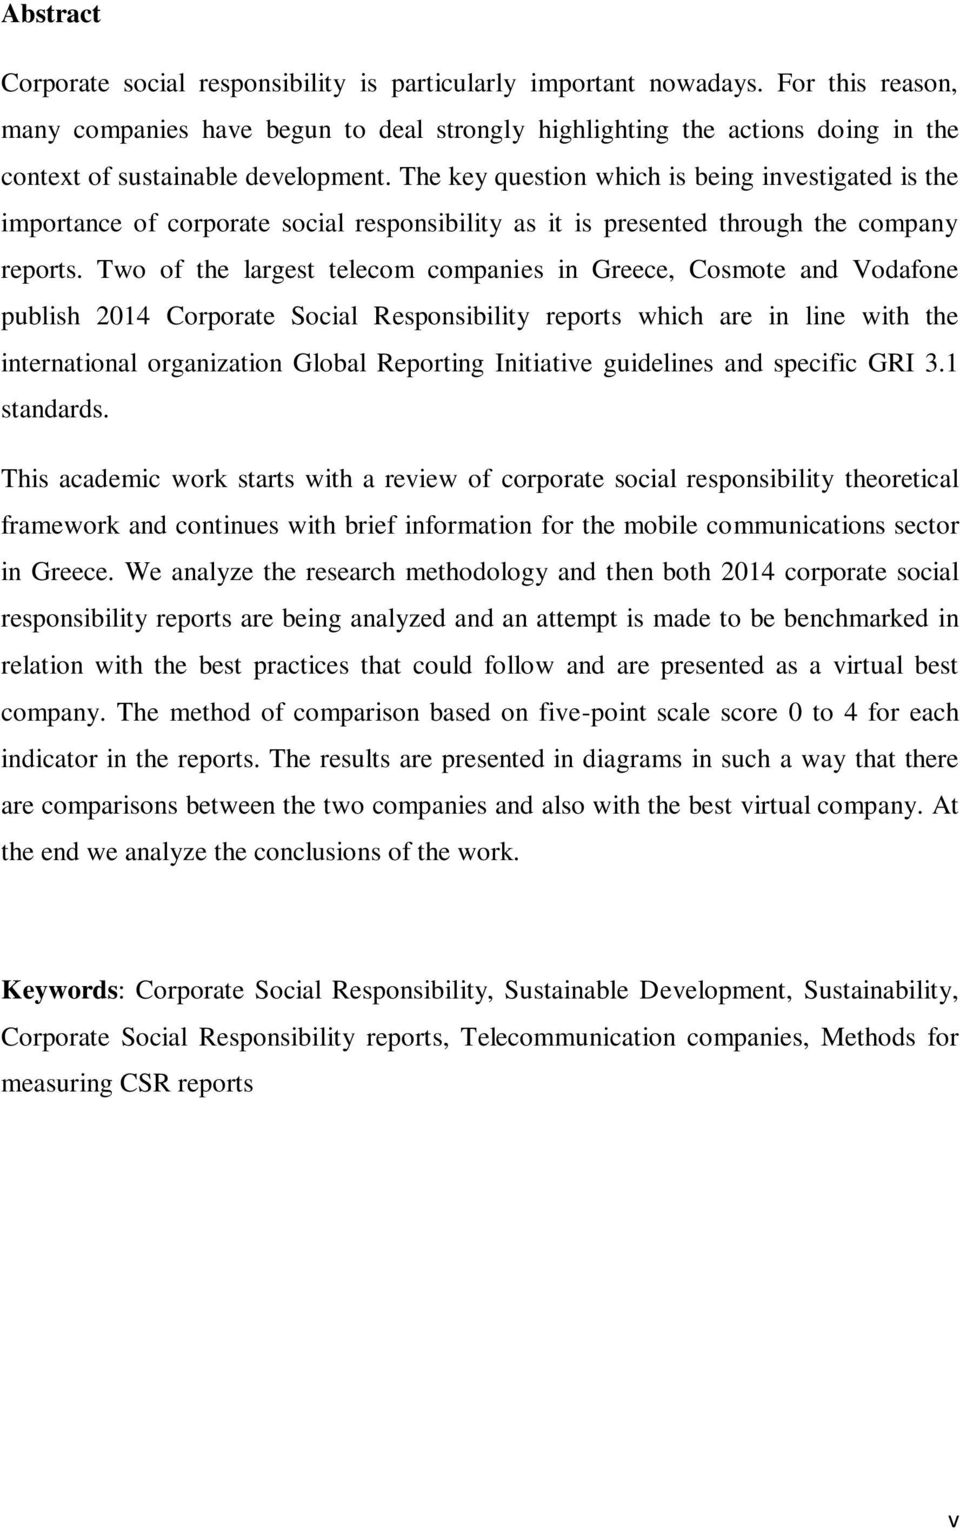 The key question which is being investigated is the importance of corporate social responsibility as it is presented through the company reports.